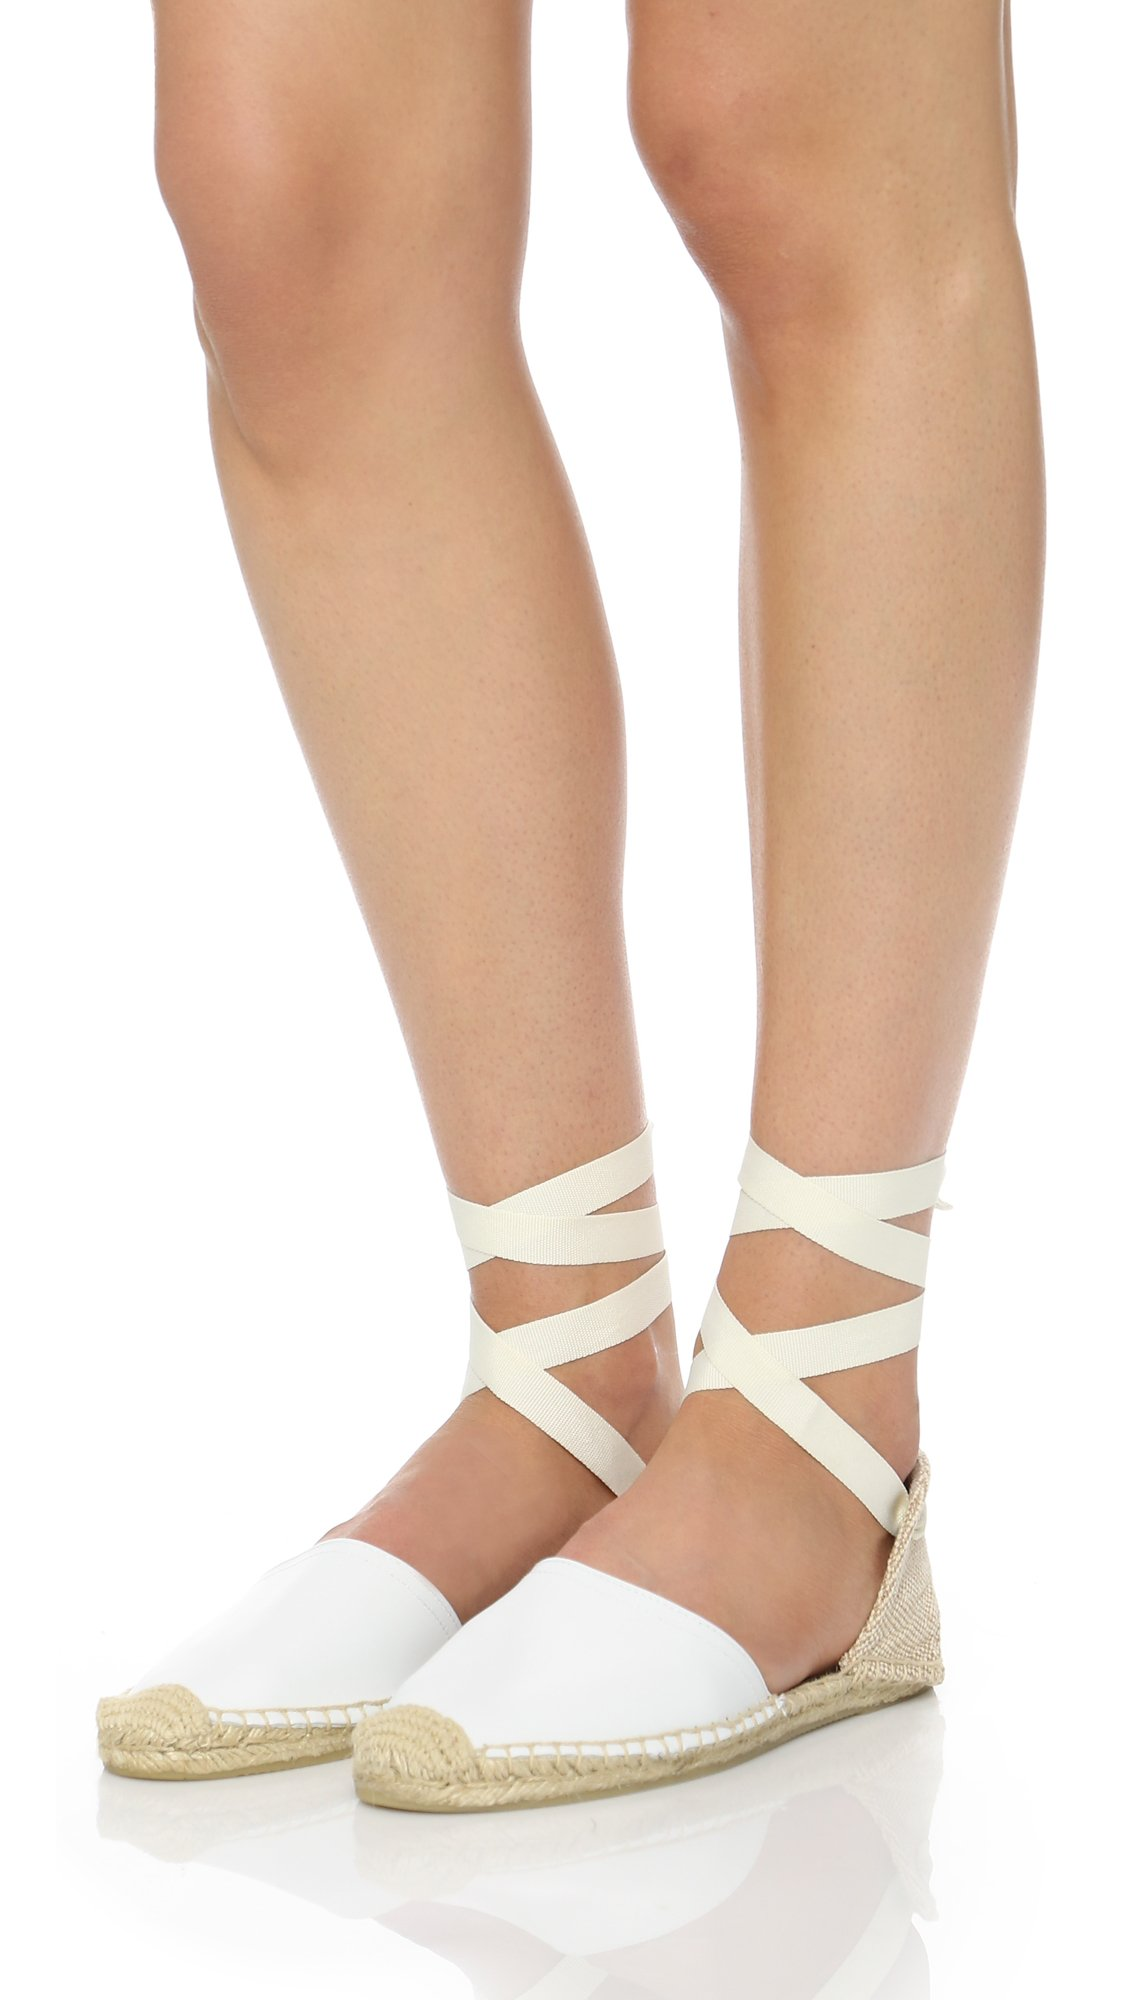 75fb05396359d Lyst - Soludos Leather Espadrille Sandals in White